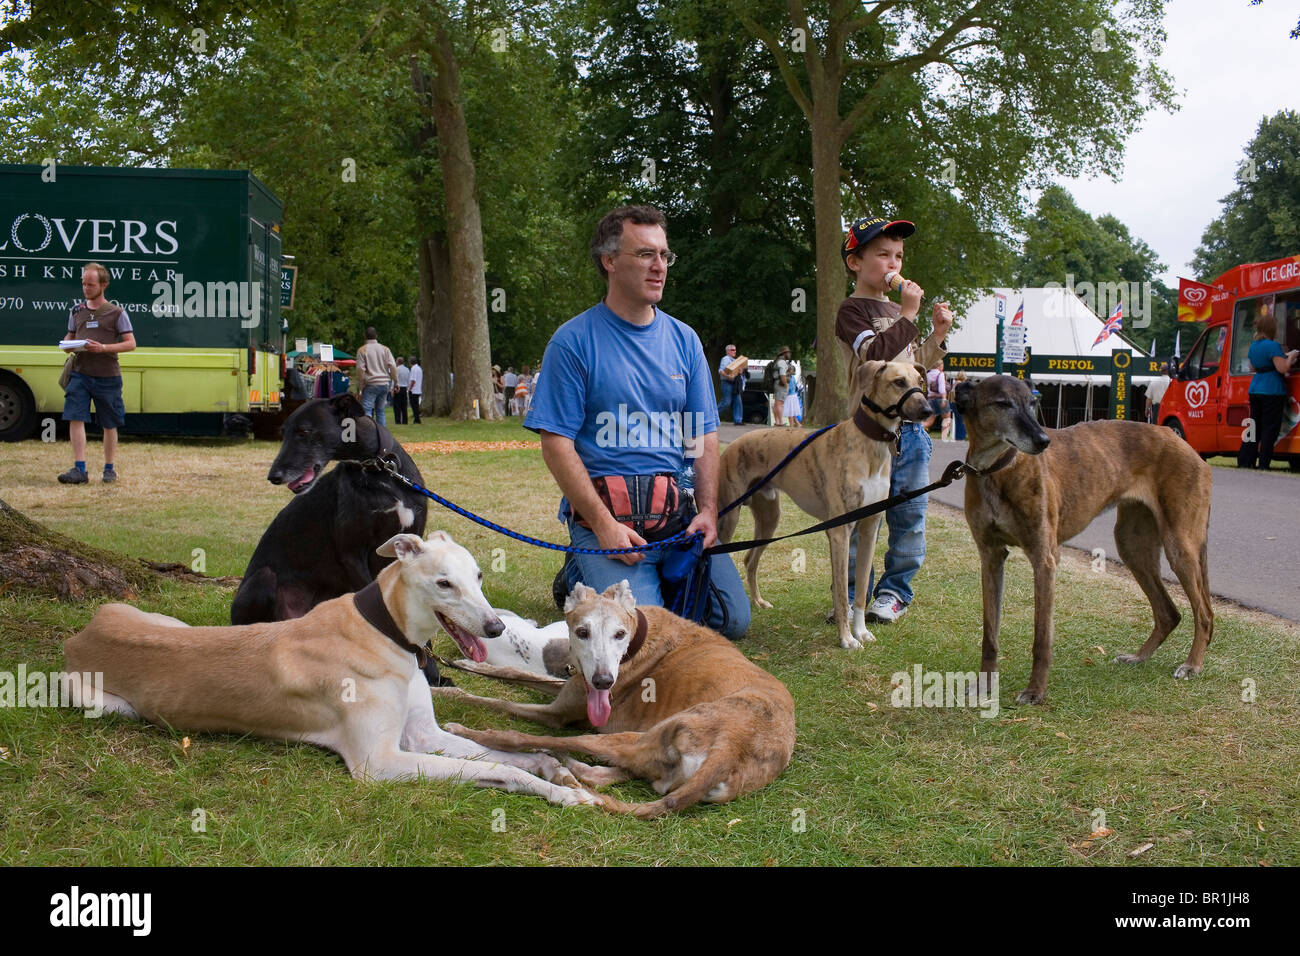 A man and boy with 5 greyhound dogs on the grass. - Stock Image